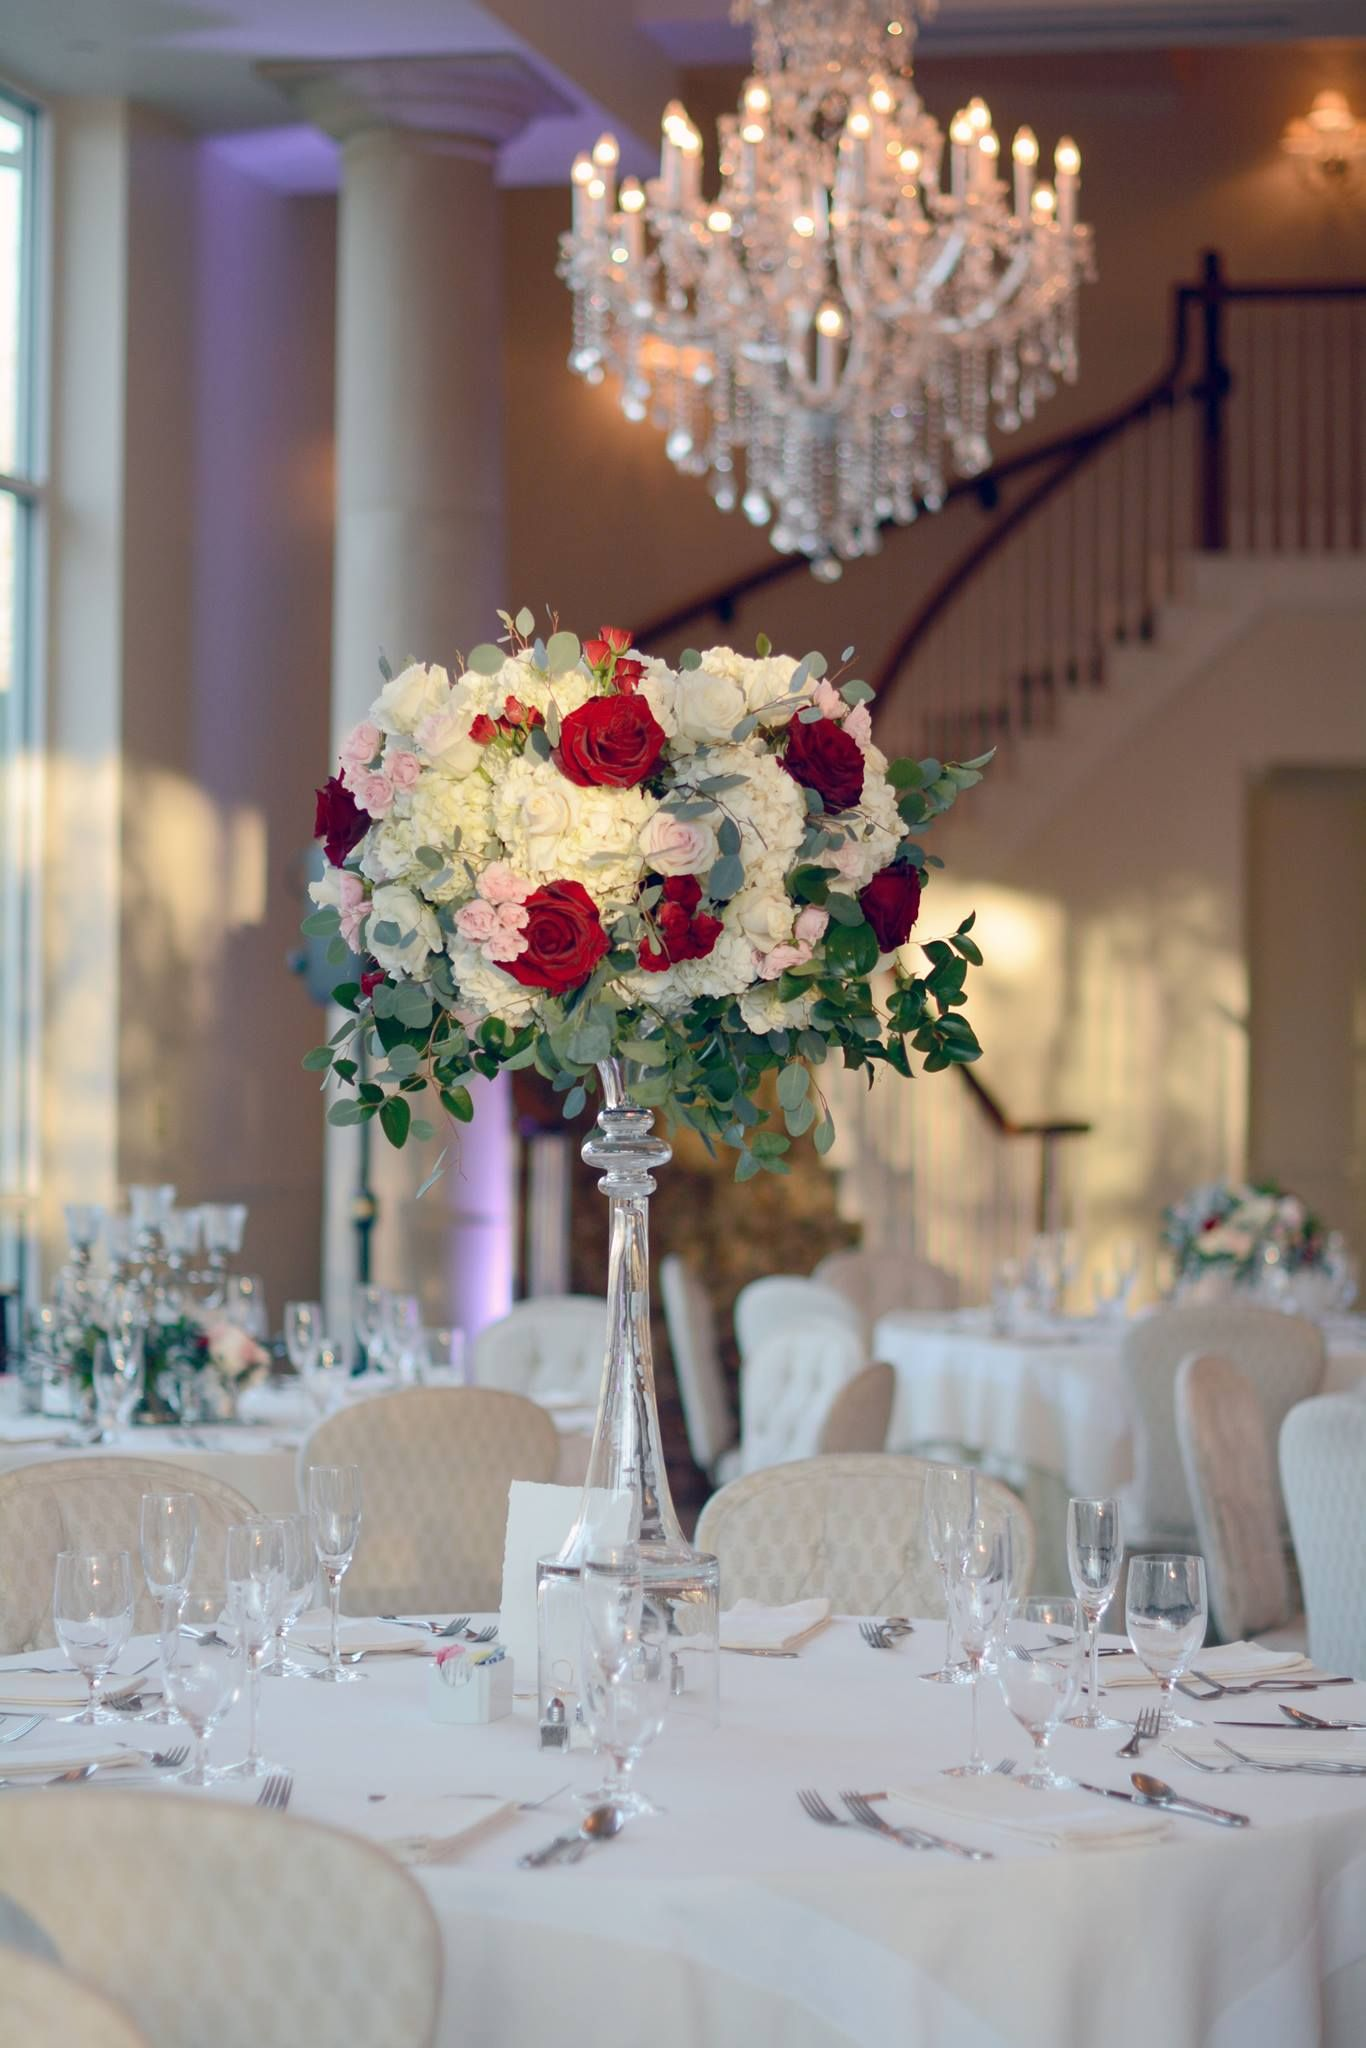 Centerpiece Idea Every Other Table Flowers White And Deep Burgundy To Mat Red Wedding Flowers Centerpieces Gold Wedding Decorations Cheap Wedding Decorations